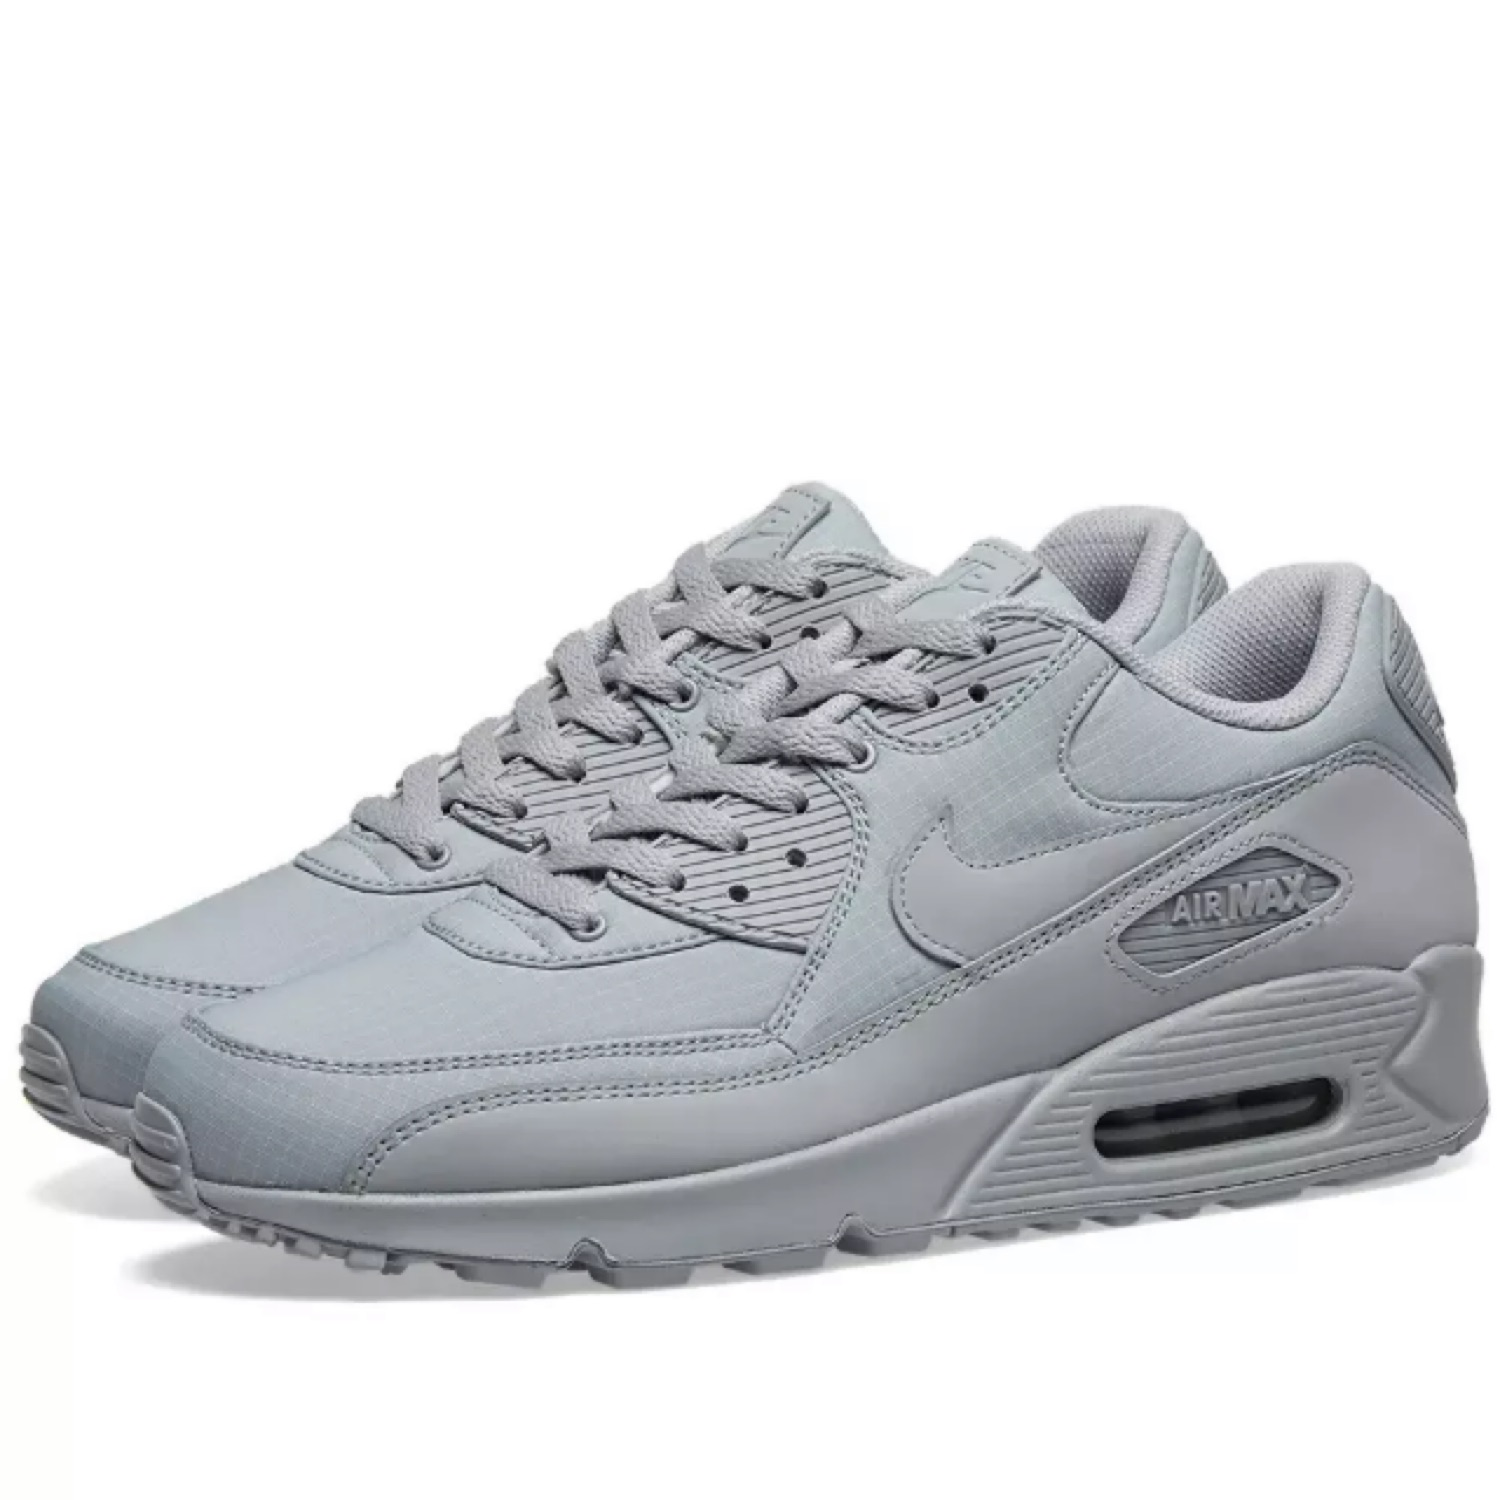 new arrival 392f9 41ce8 Nike Air Max 90 Essential Wolf Grey